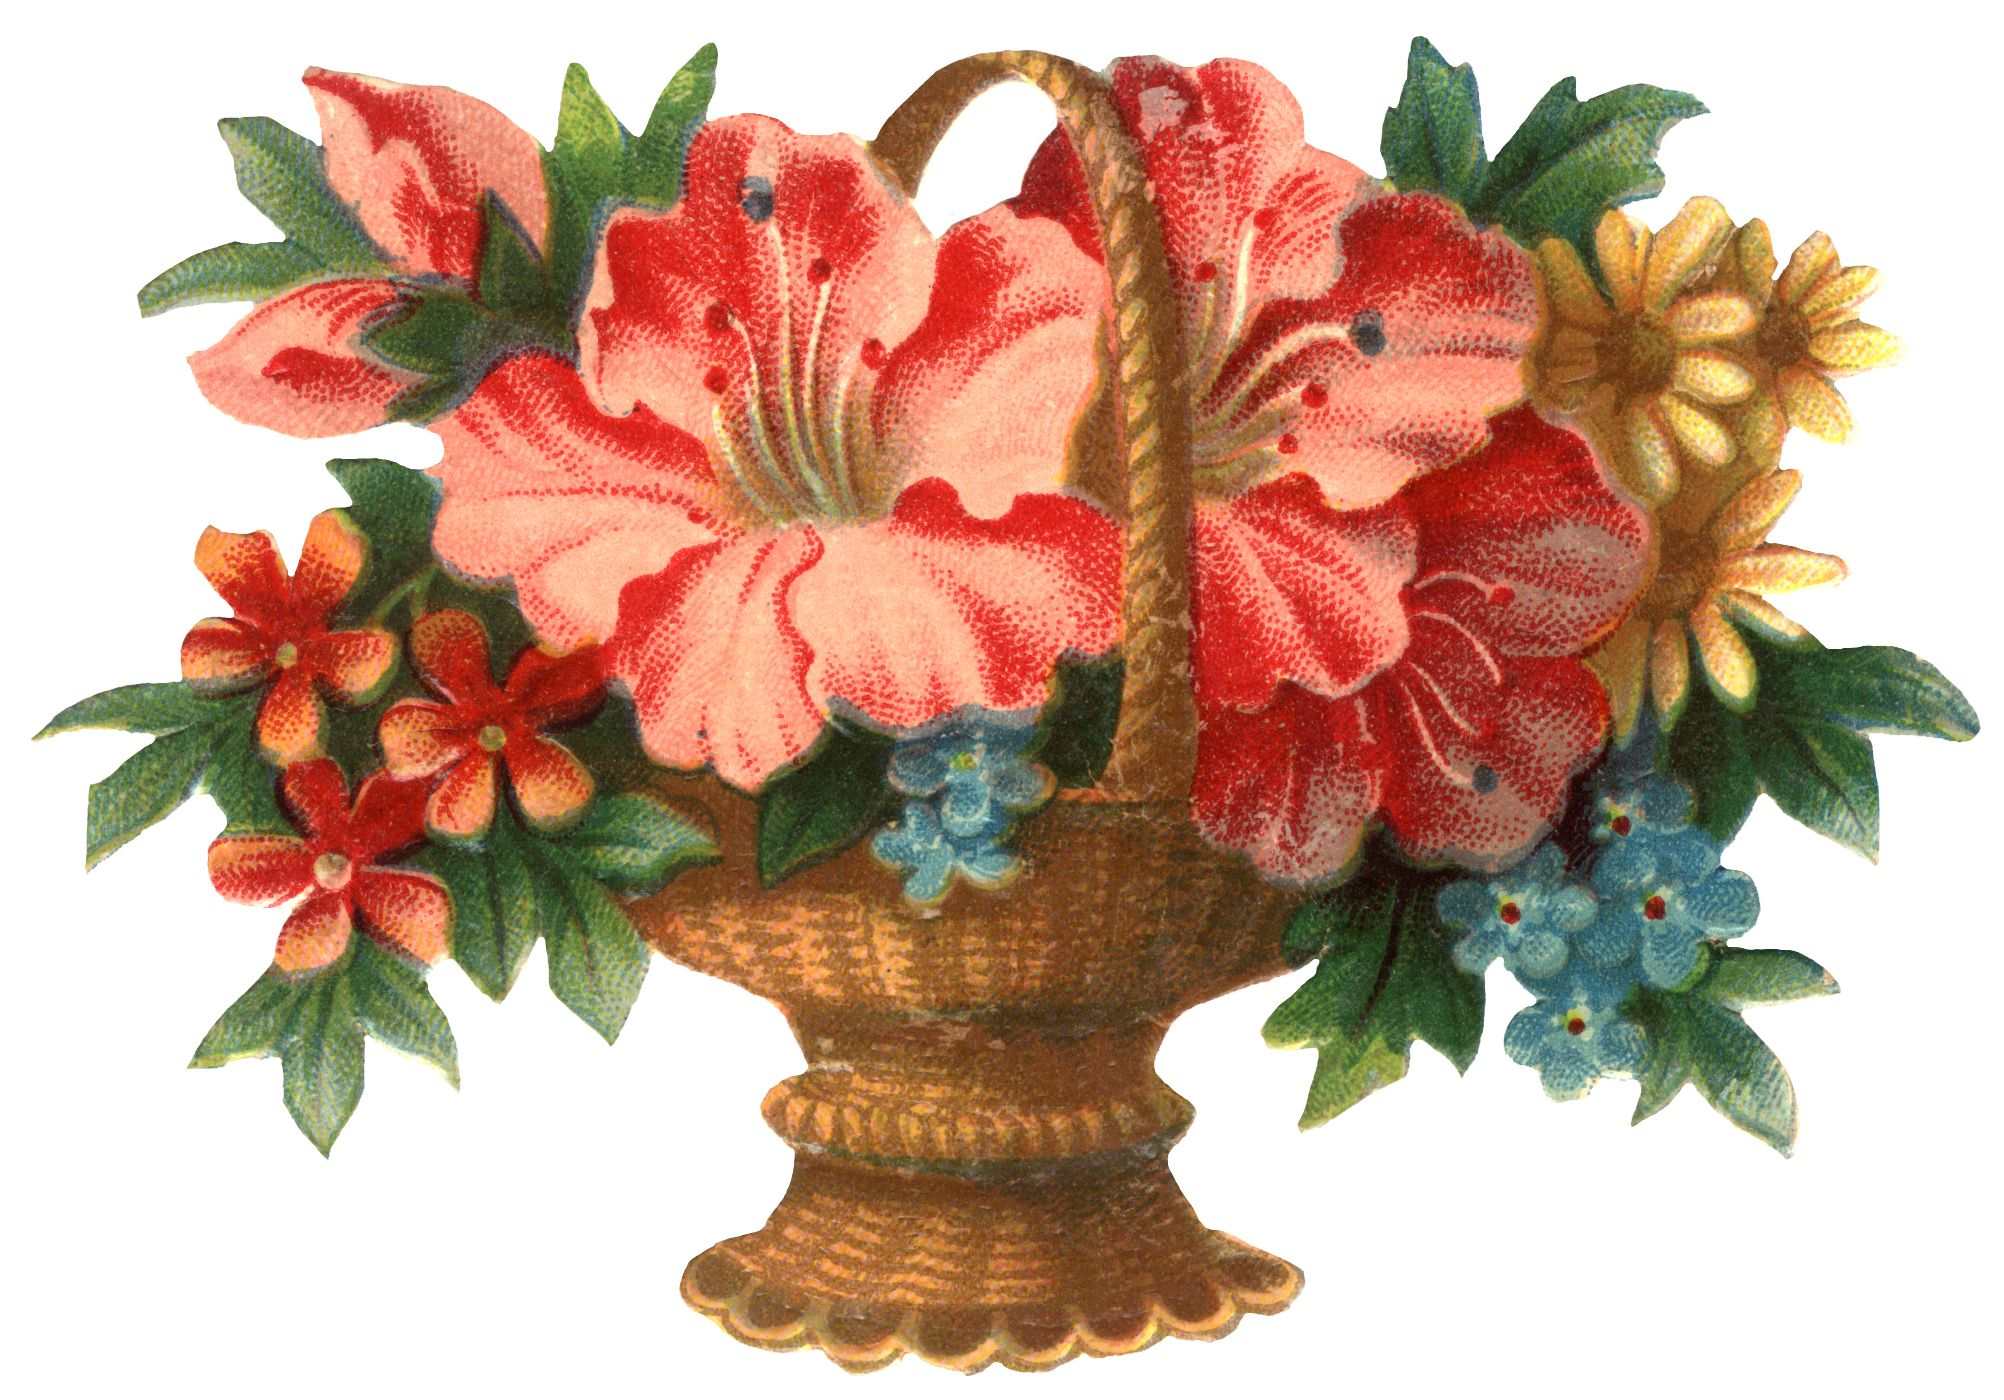 Flower Sentiments from the Victorian Era Victorian